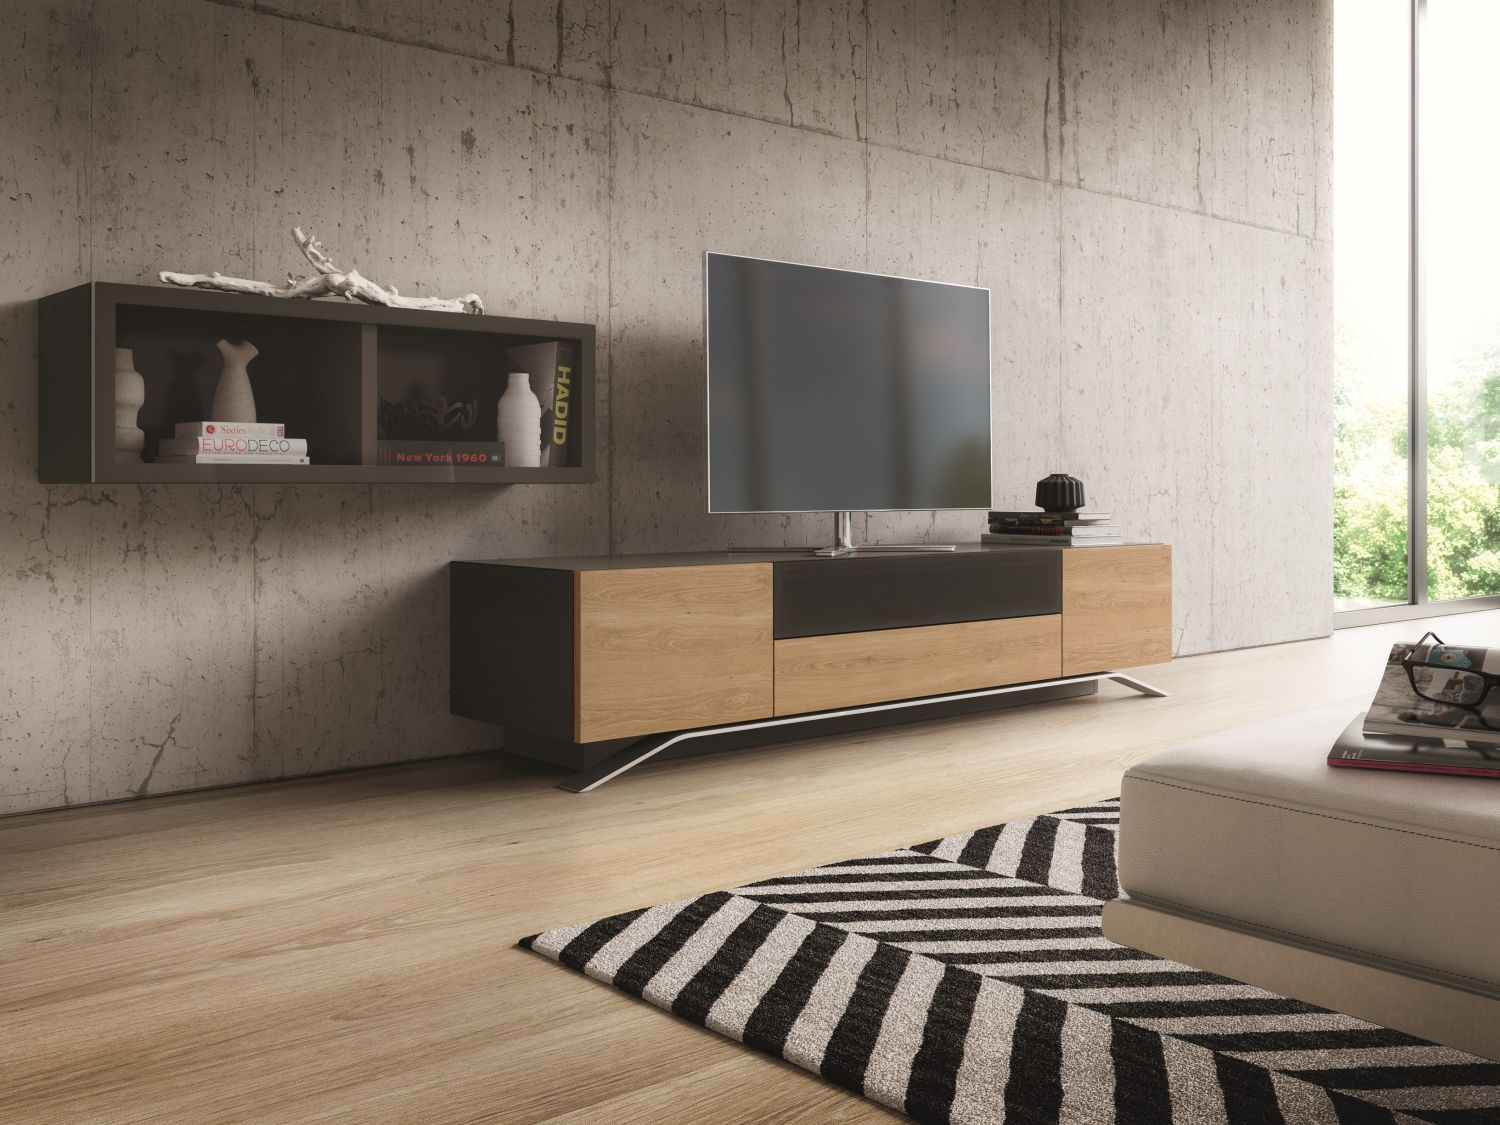 Console Design Modern Media Console Designs Showcasing This Style 39s Best